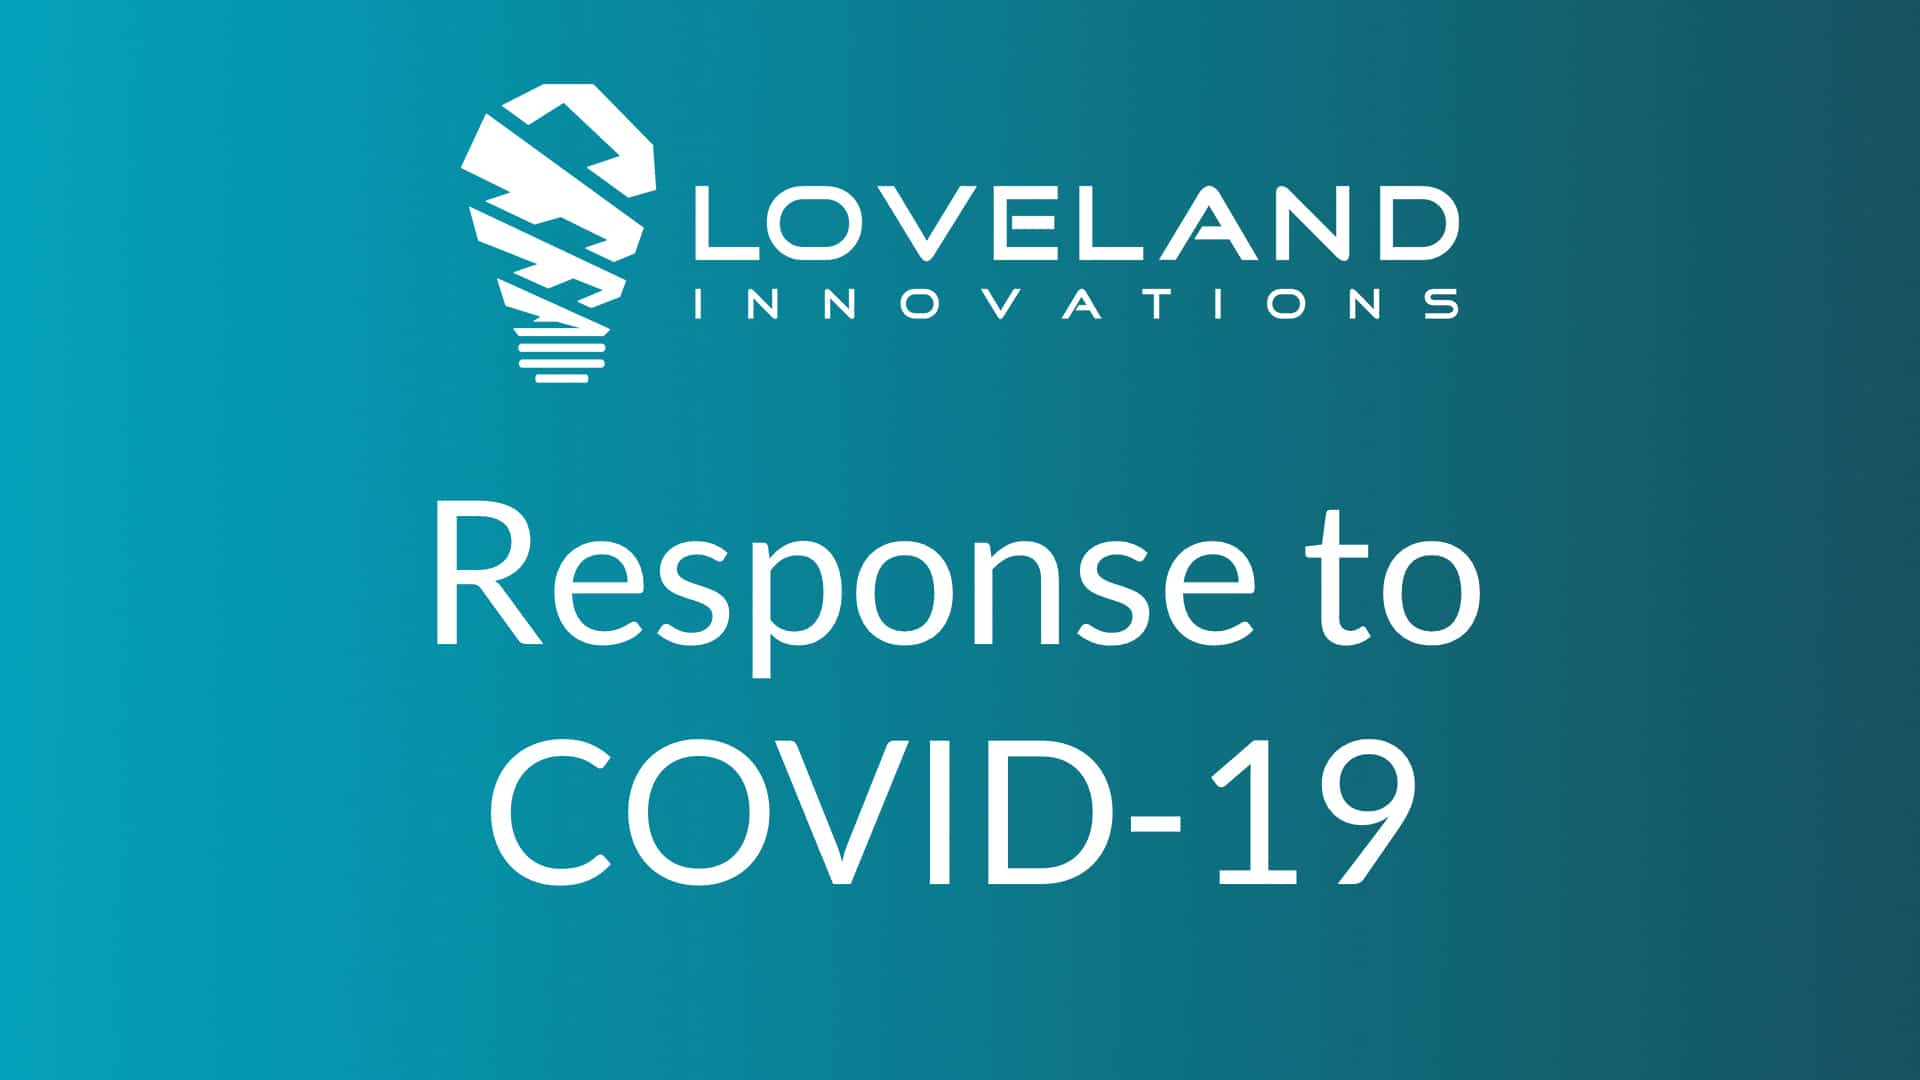 COVID-19 Response by Loveland Innovations